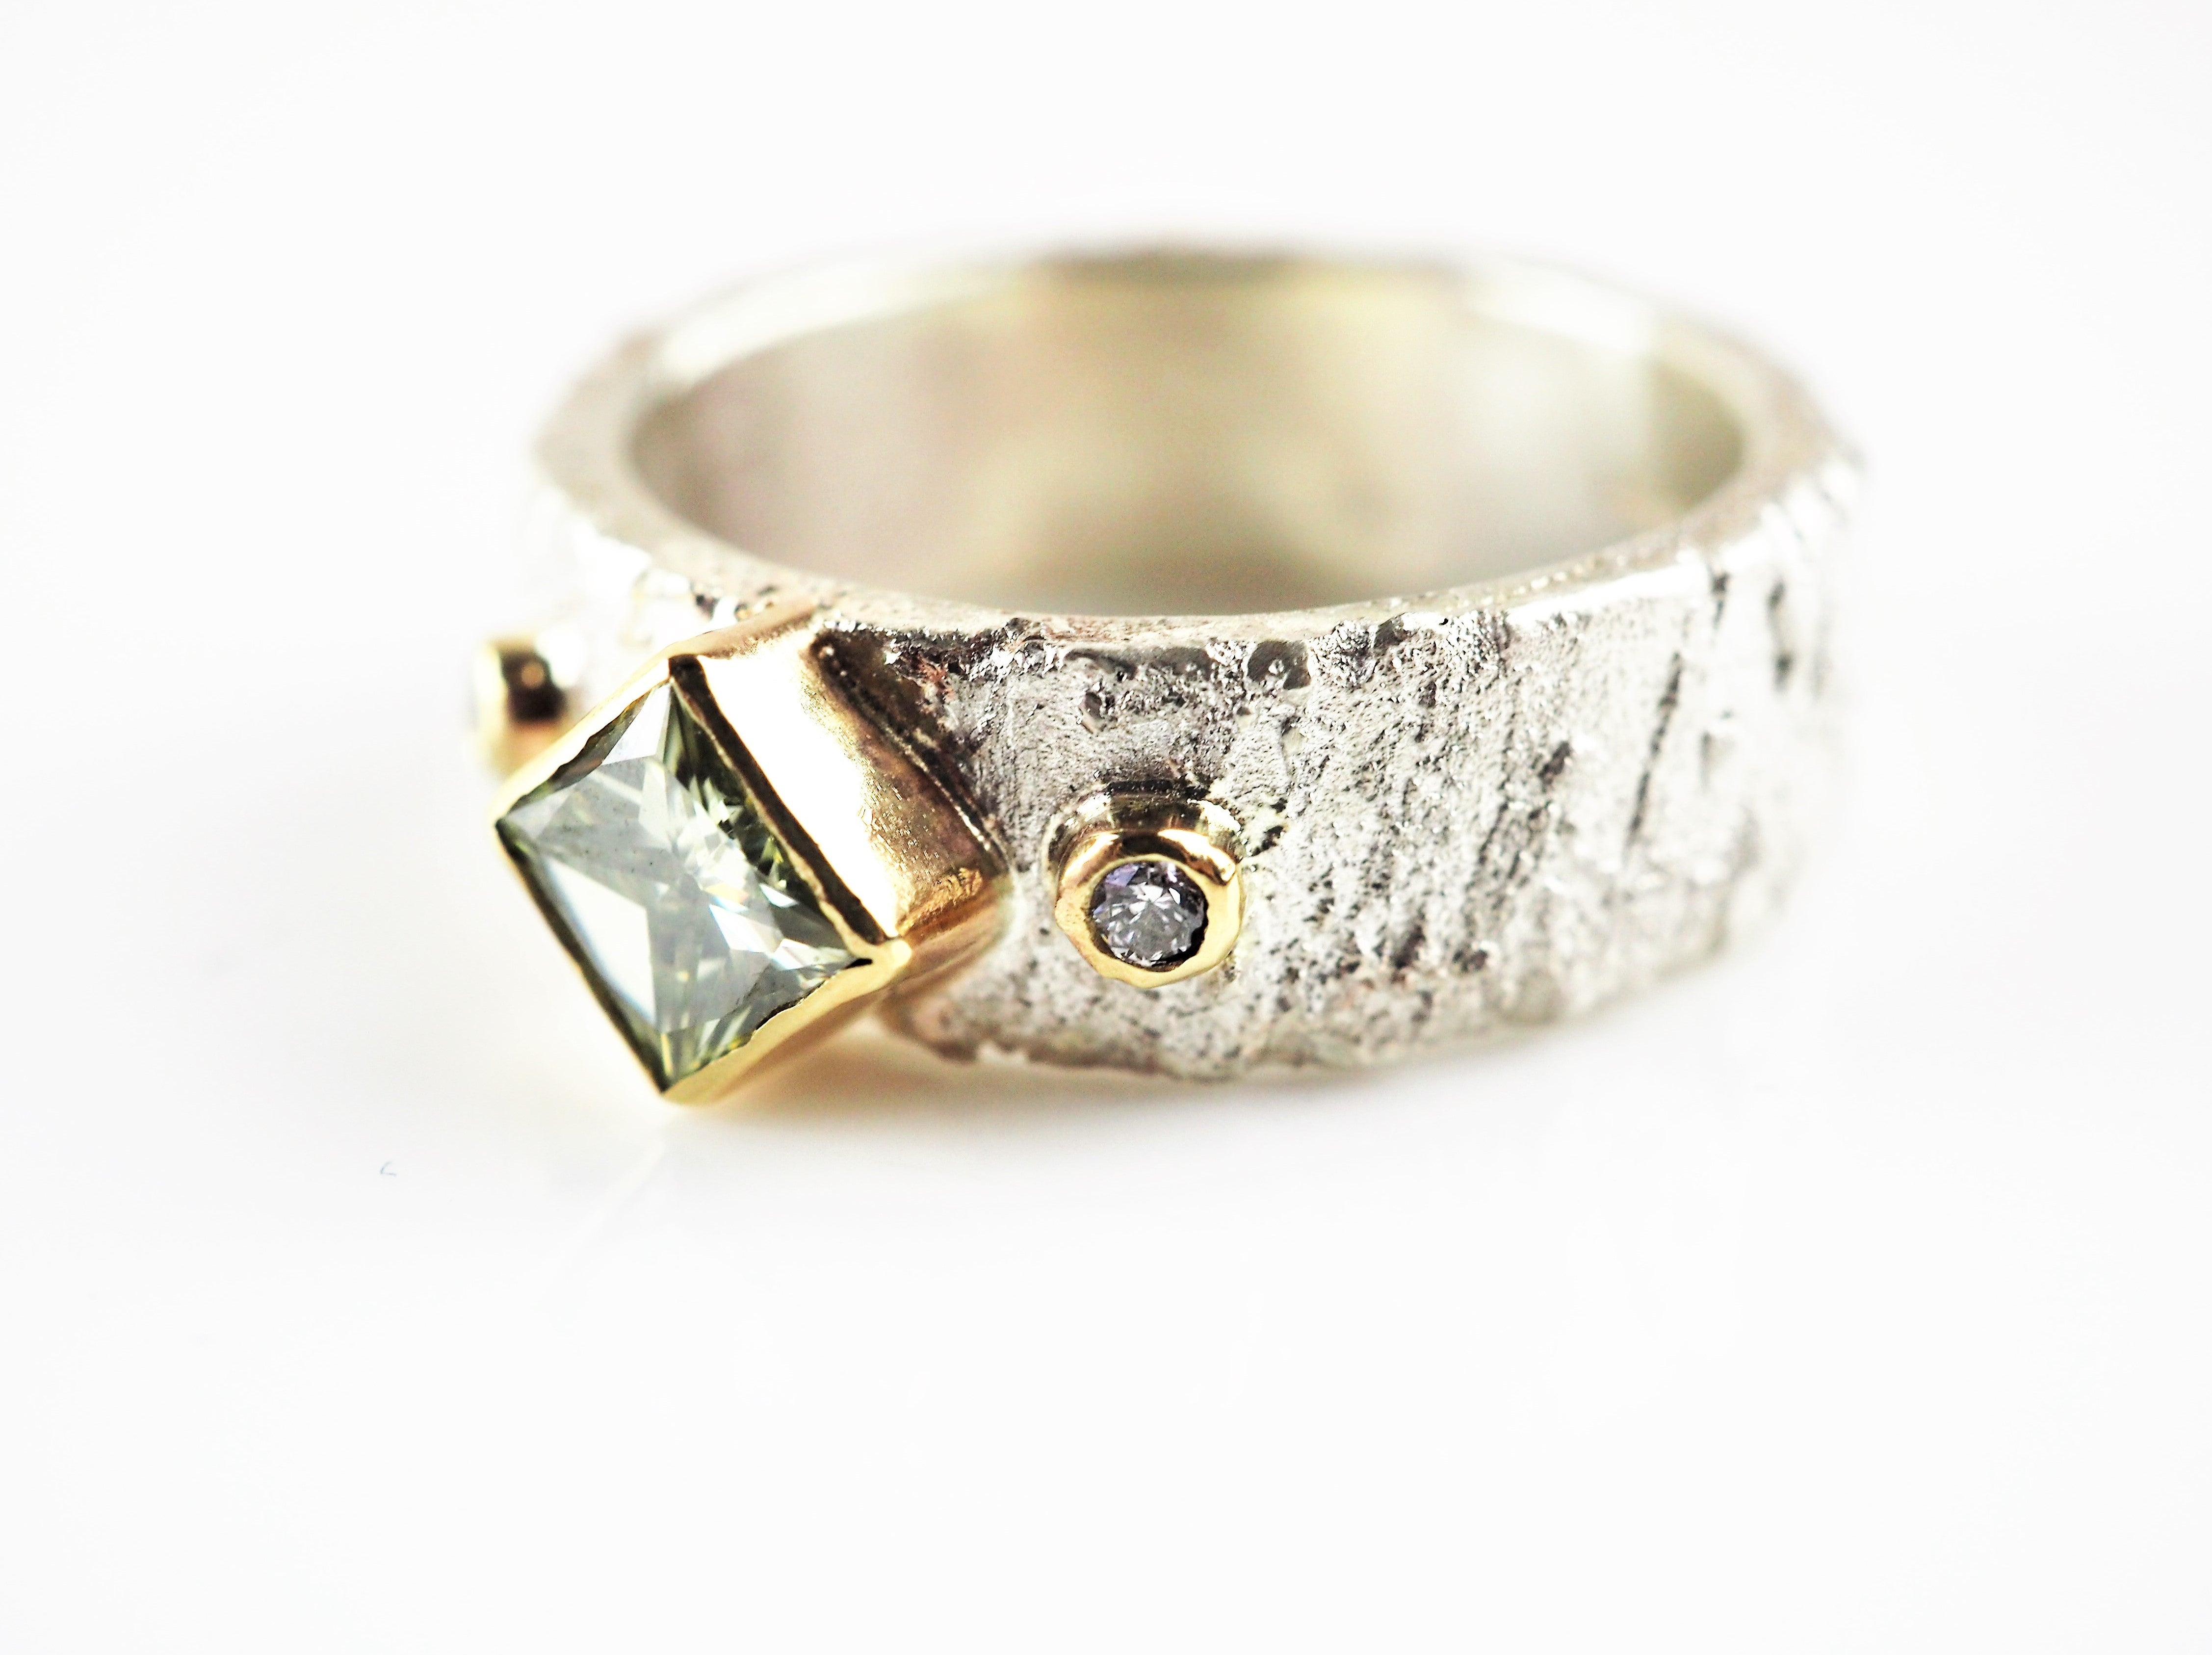 Hanl, Susanna – Silver and Gold Moissanite Ring | Susanna Hanl | Primavera Gallery